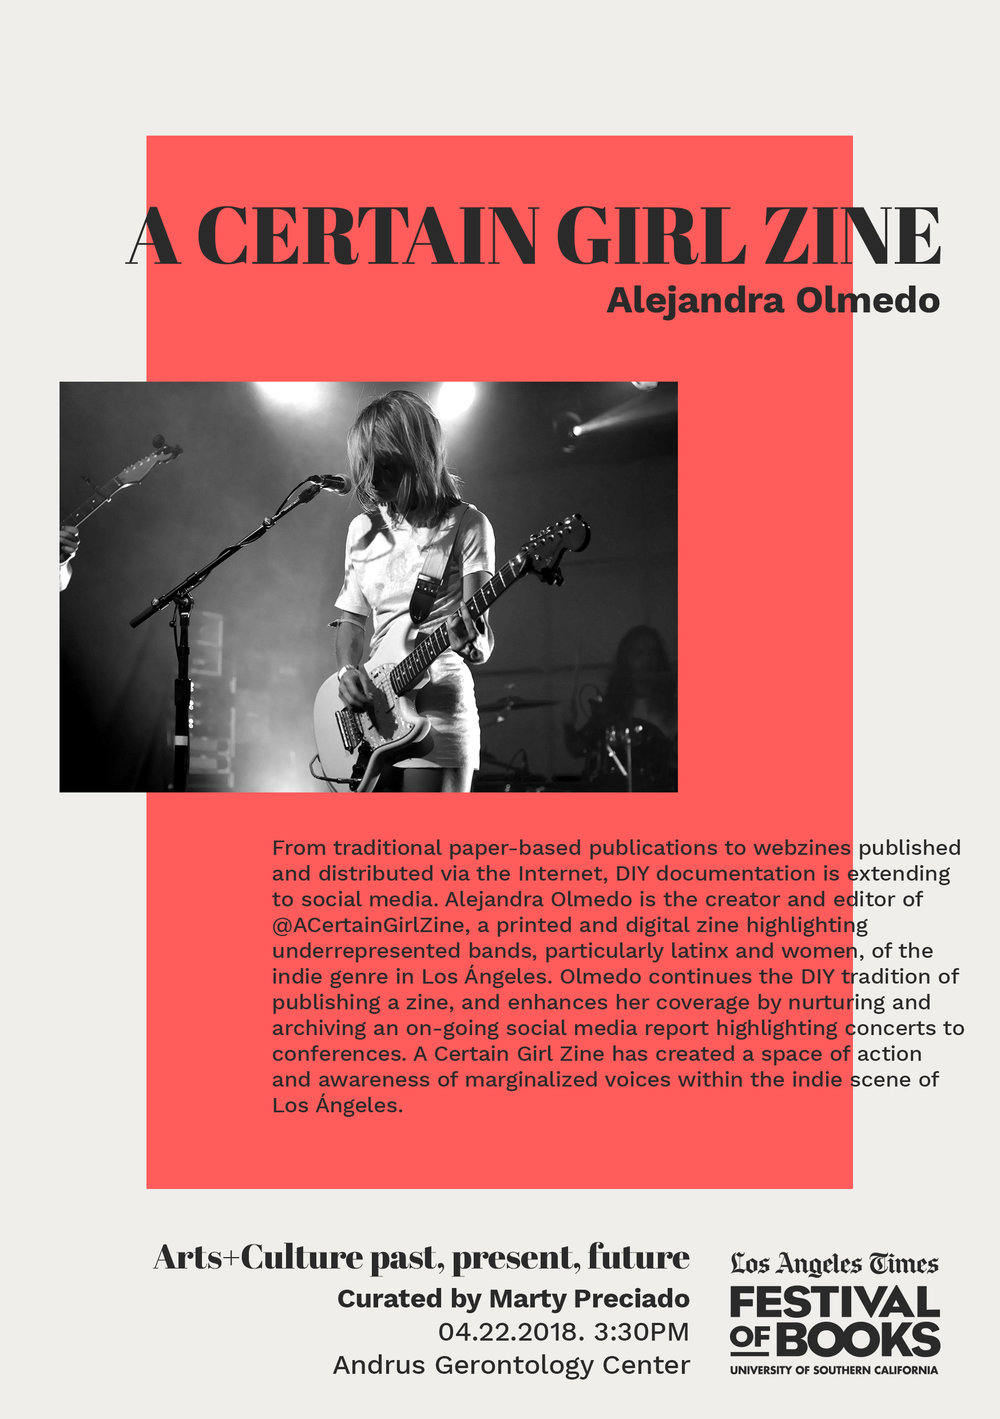 A CERTAIN GIRL ZINE BY ALEJANDRA OLMEDO  - From traditional paper-based publications to webzines published and distributed via the Internet, DIY documentation is extending to social media. Alejandra Olmedo is the creator and editor of @ACertainGirlZine, a printed and digital zine highlighting underrepresented bands, particularly latinx and women, of the indie genre in Los Ángeles. Olmedo continues the DIY tradition of publishing a zine, and enhances her coverage by nurturing and archiving an on-going social media report highlighting concerts to conferences. A Certain Girl Zine has created a space of action and awareness of marginalized voices within the indie scene of Los Ángeles.